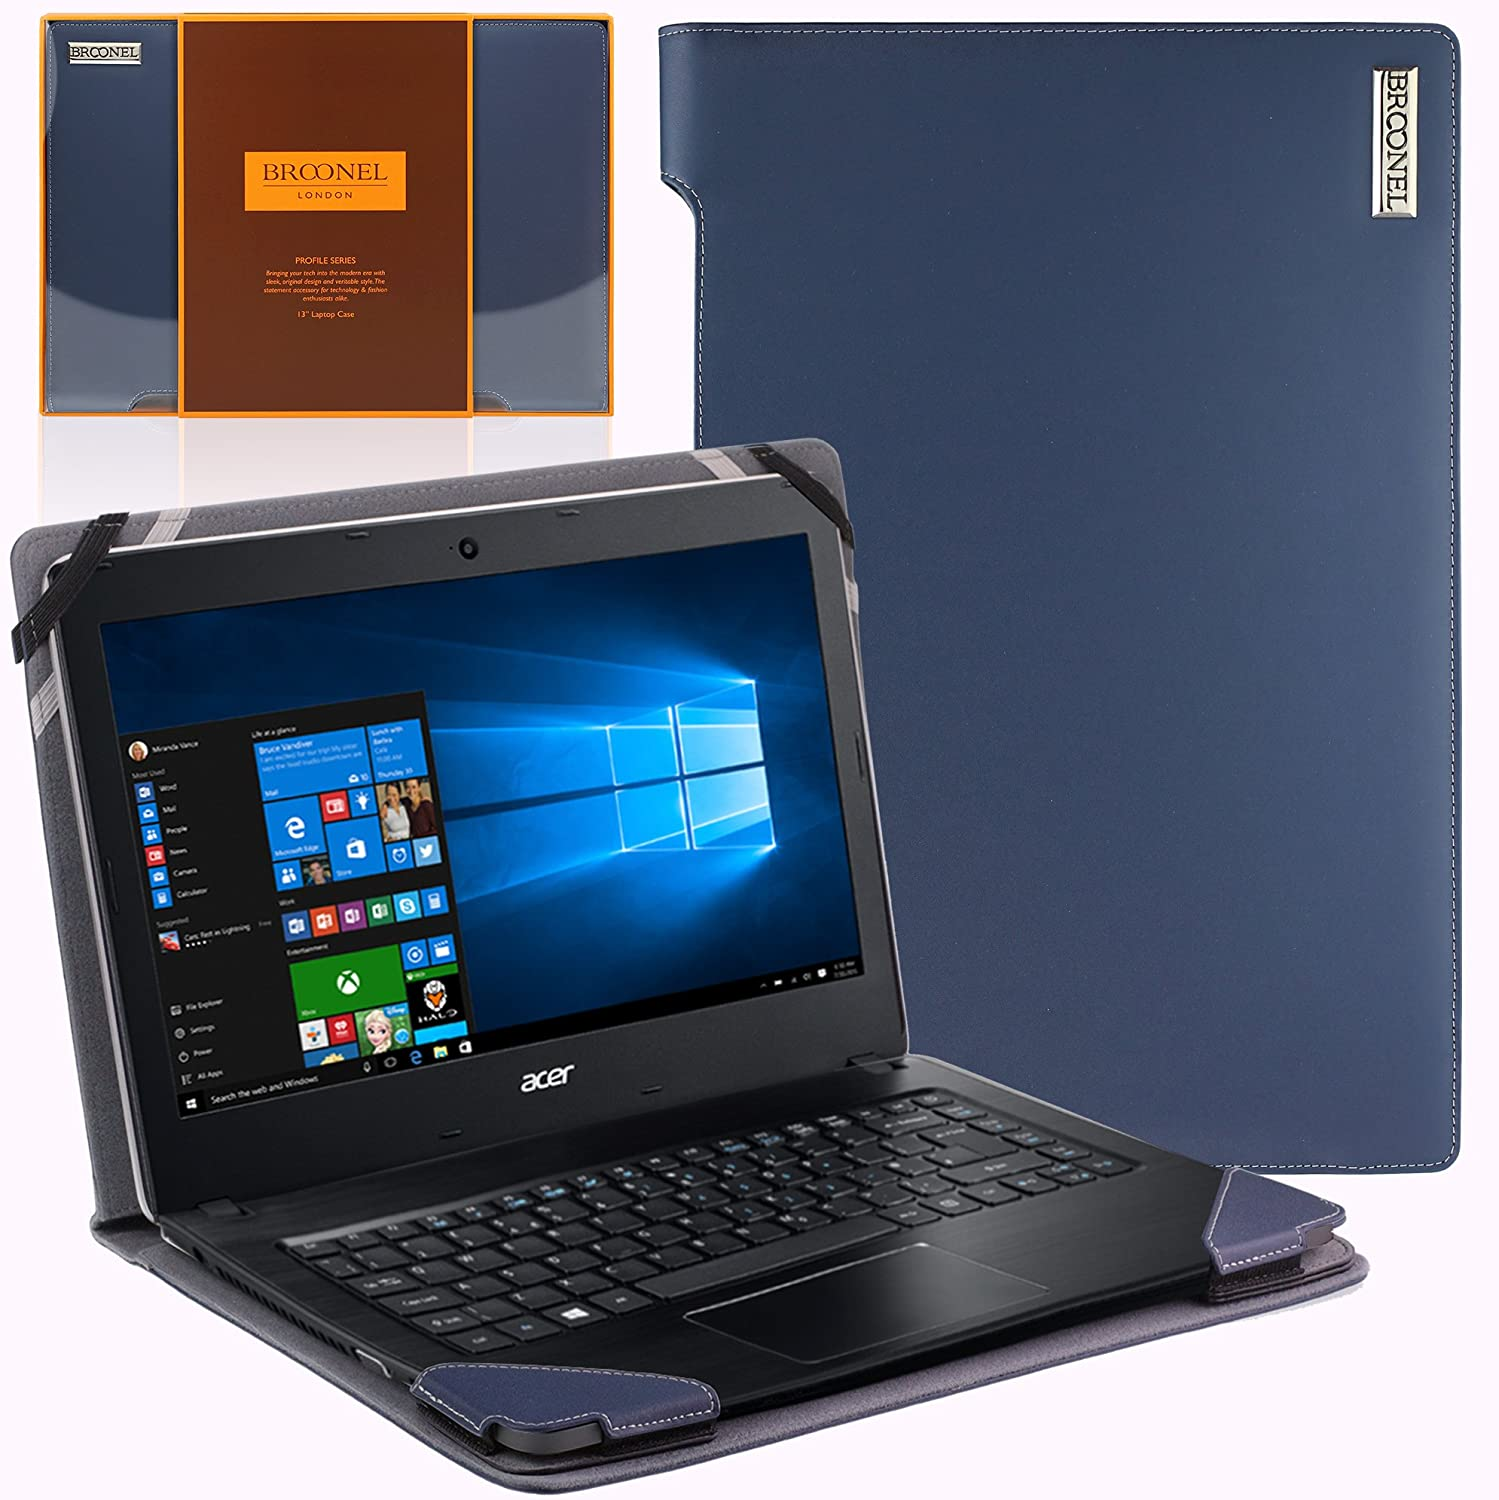 """Broonel London - Profile Series - Blue Vegan Leather Luxury Laptop Case Cover Sleeve Compatible with The Acer Travelmate P2 Series P249 / Acer TravelMate P256-M/Acer Travelmate P253-M 15.6"""""""